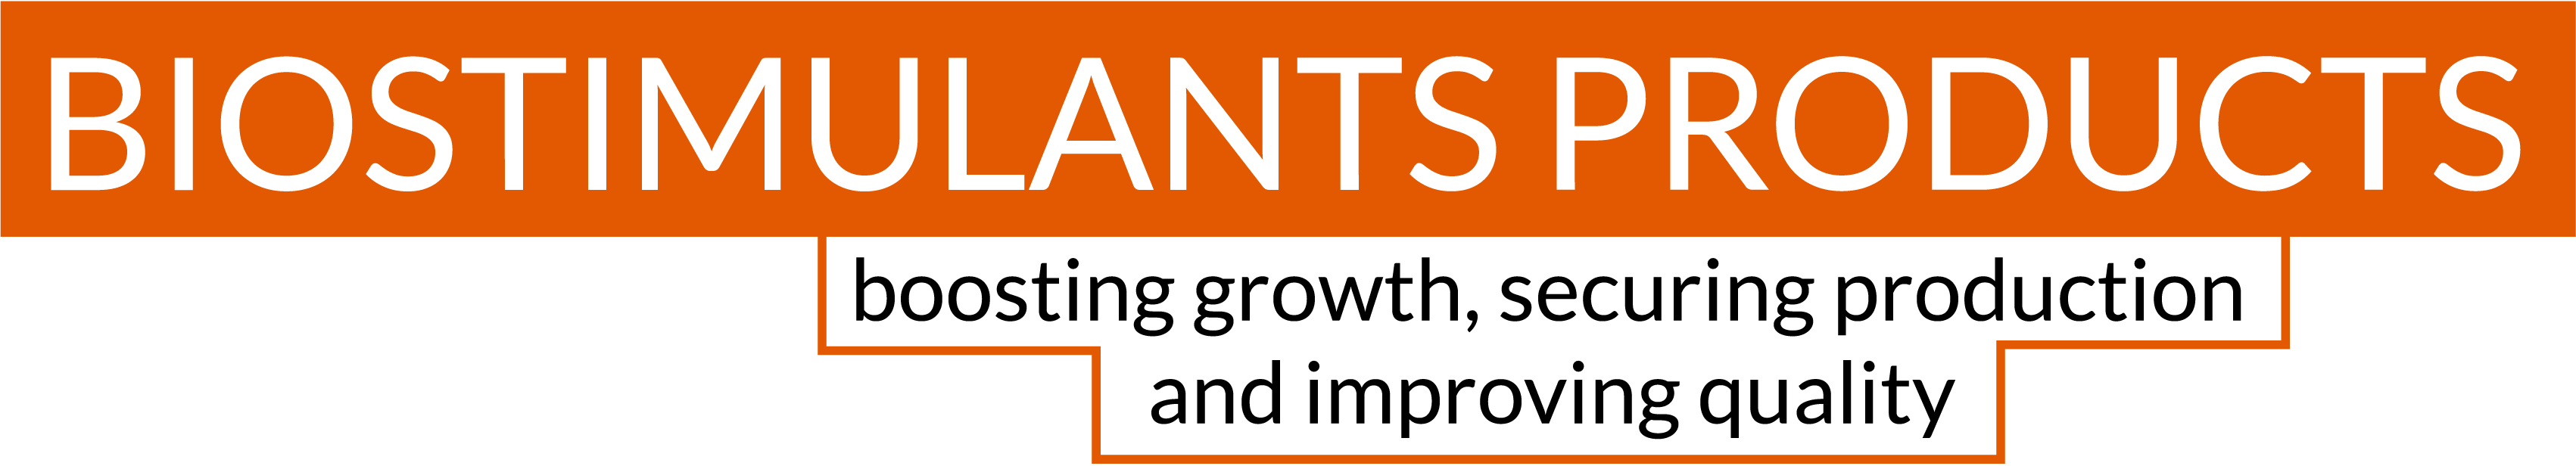 Biostimulant products boosting growth, securing production and improving quality